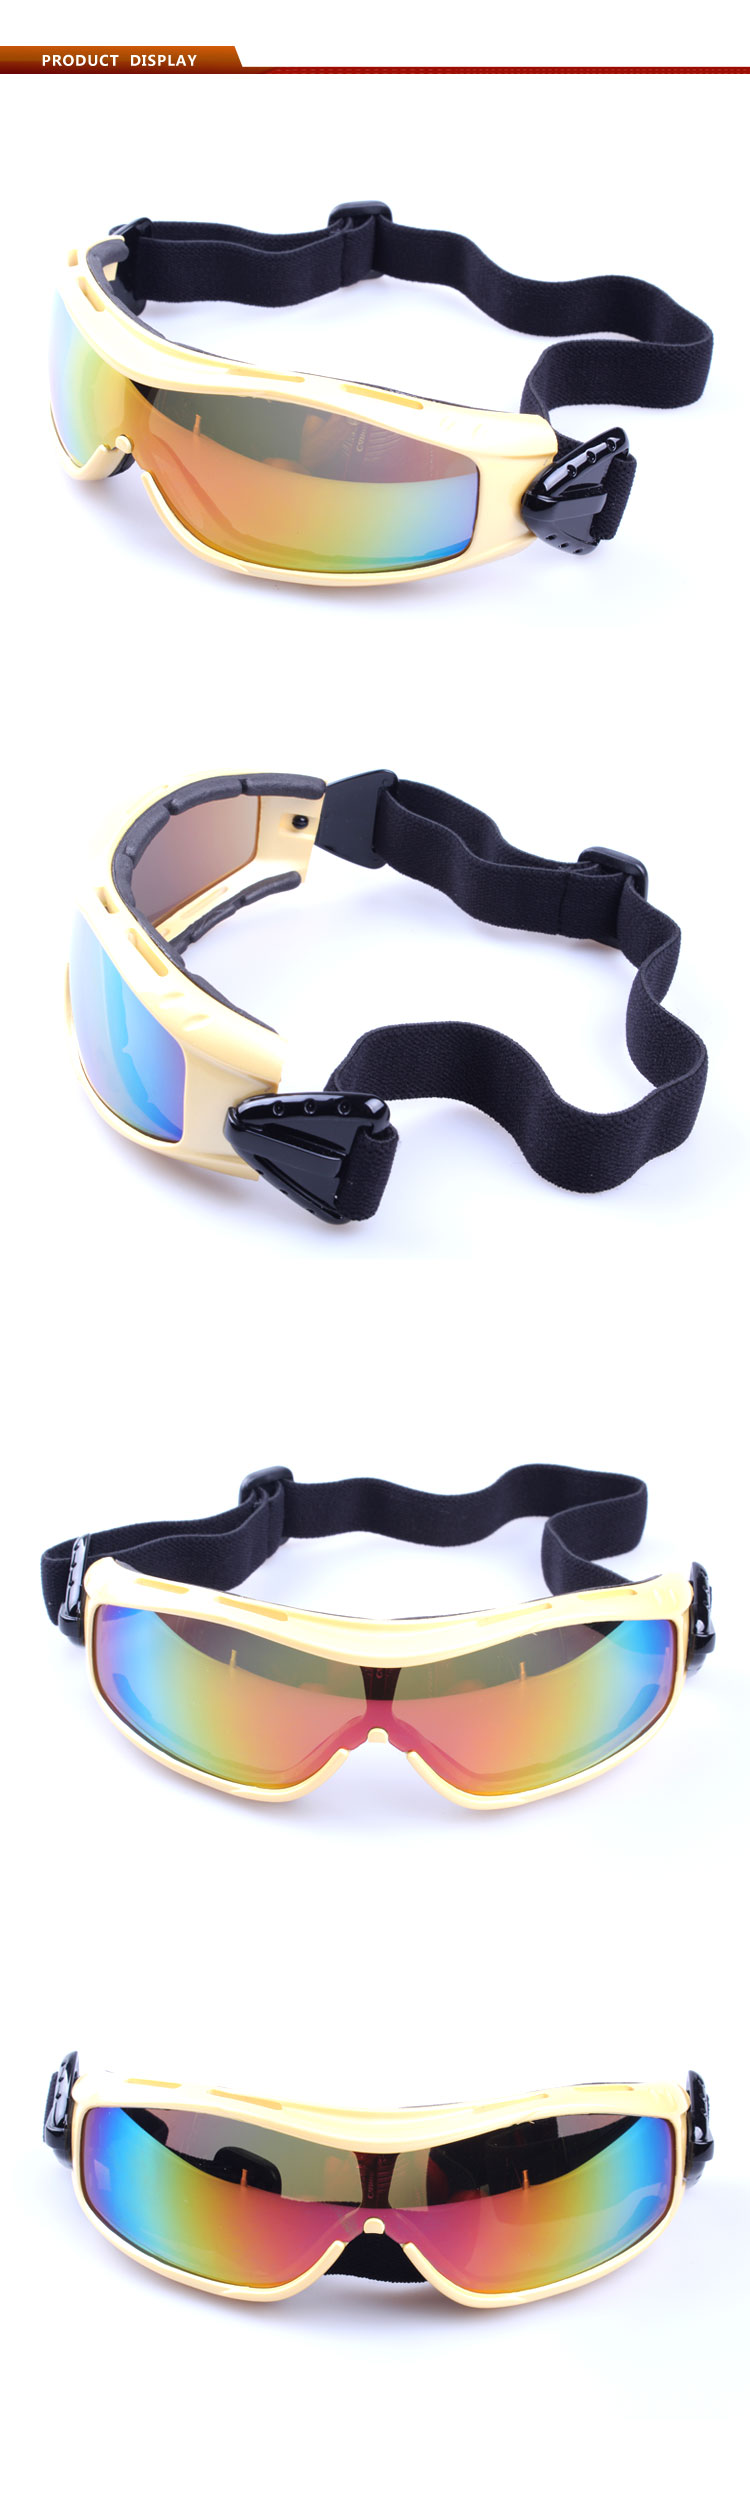 popular riding sport sunglasses for motorcycle glasses for men